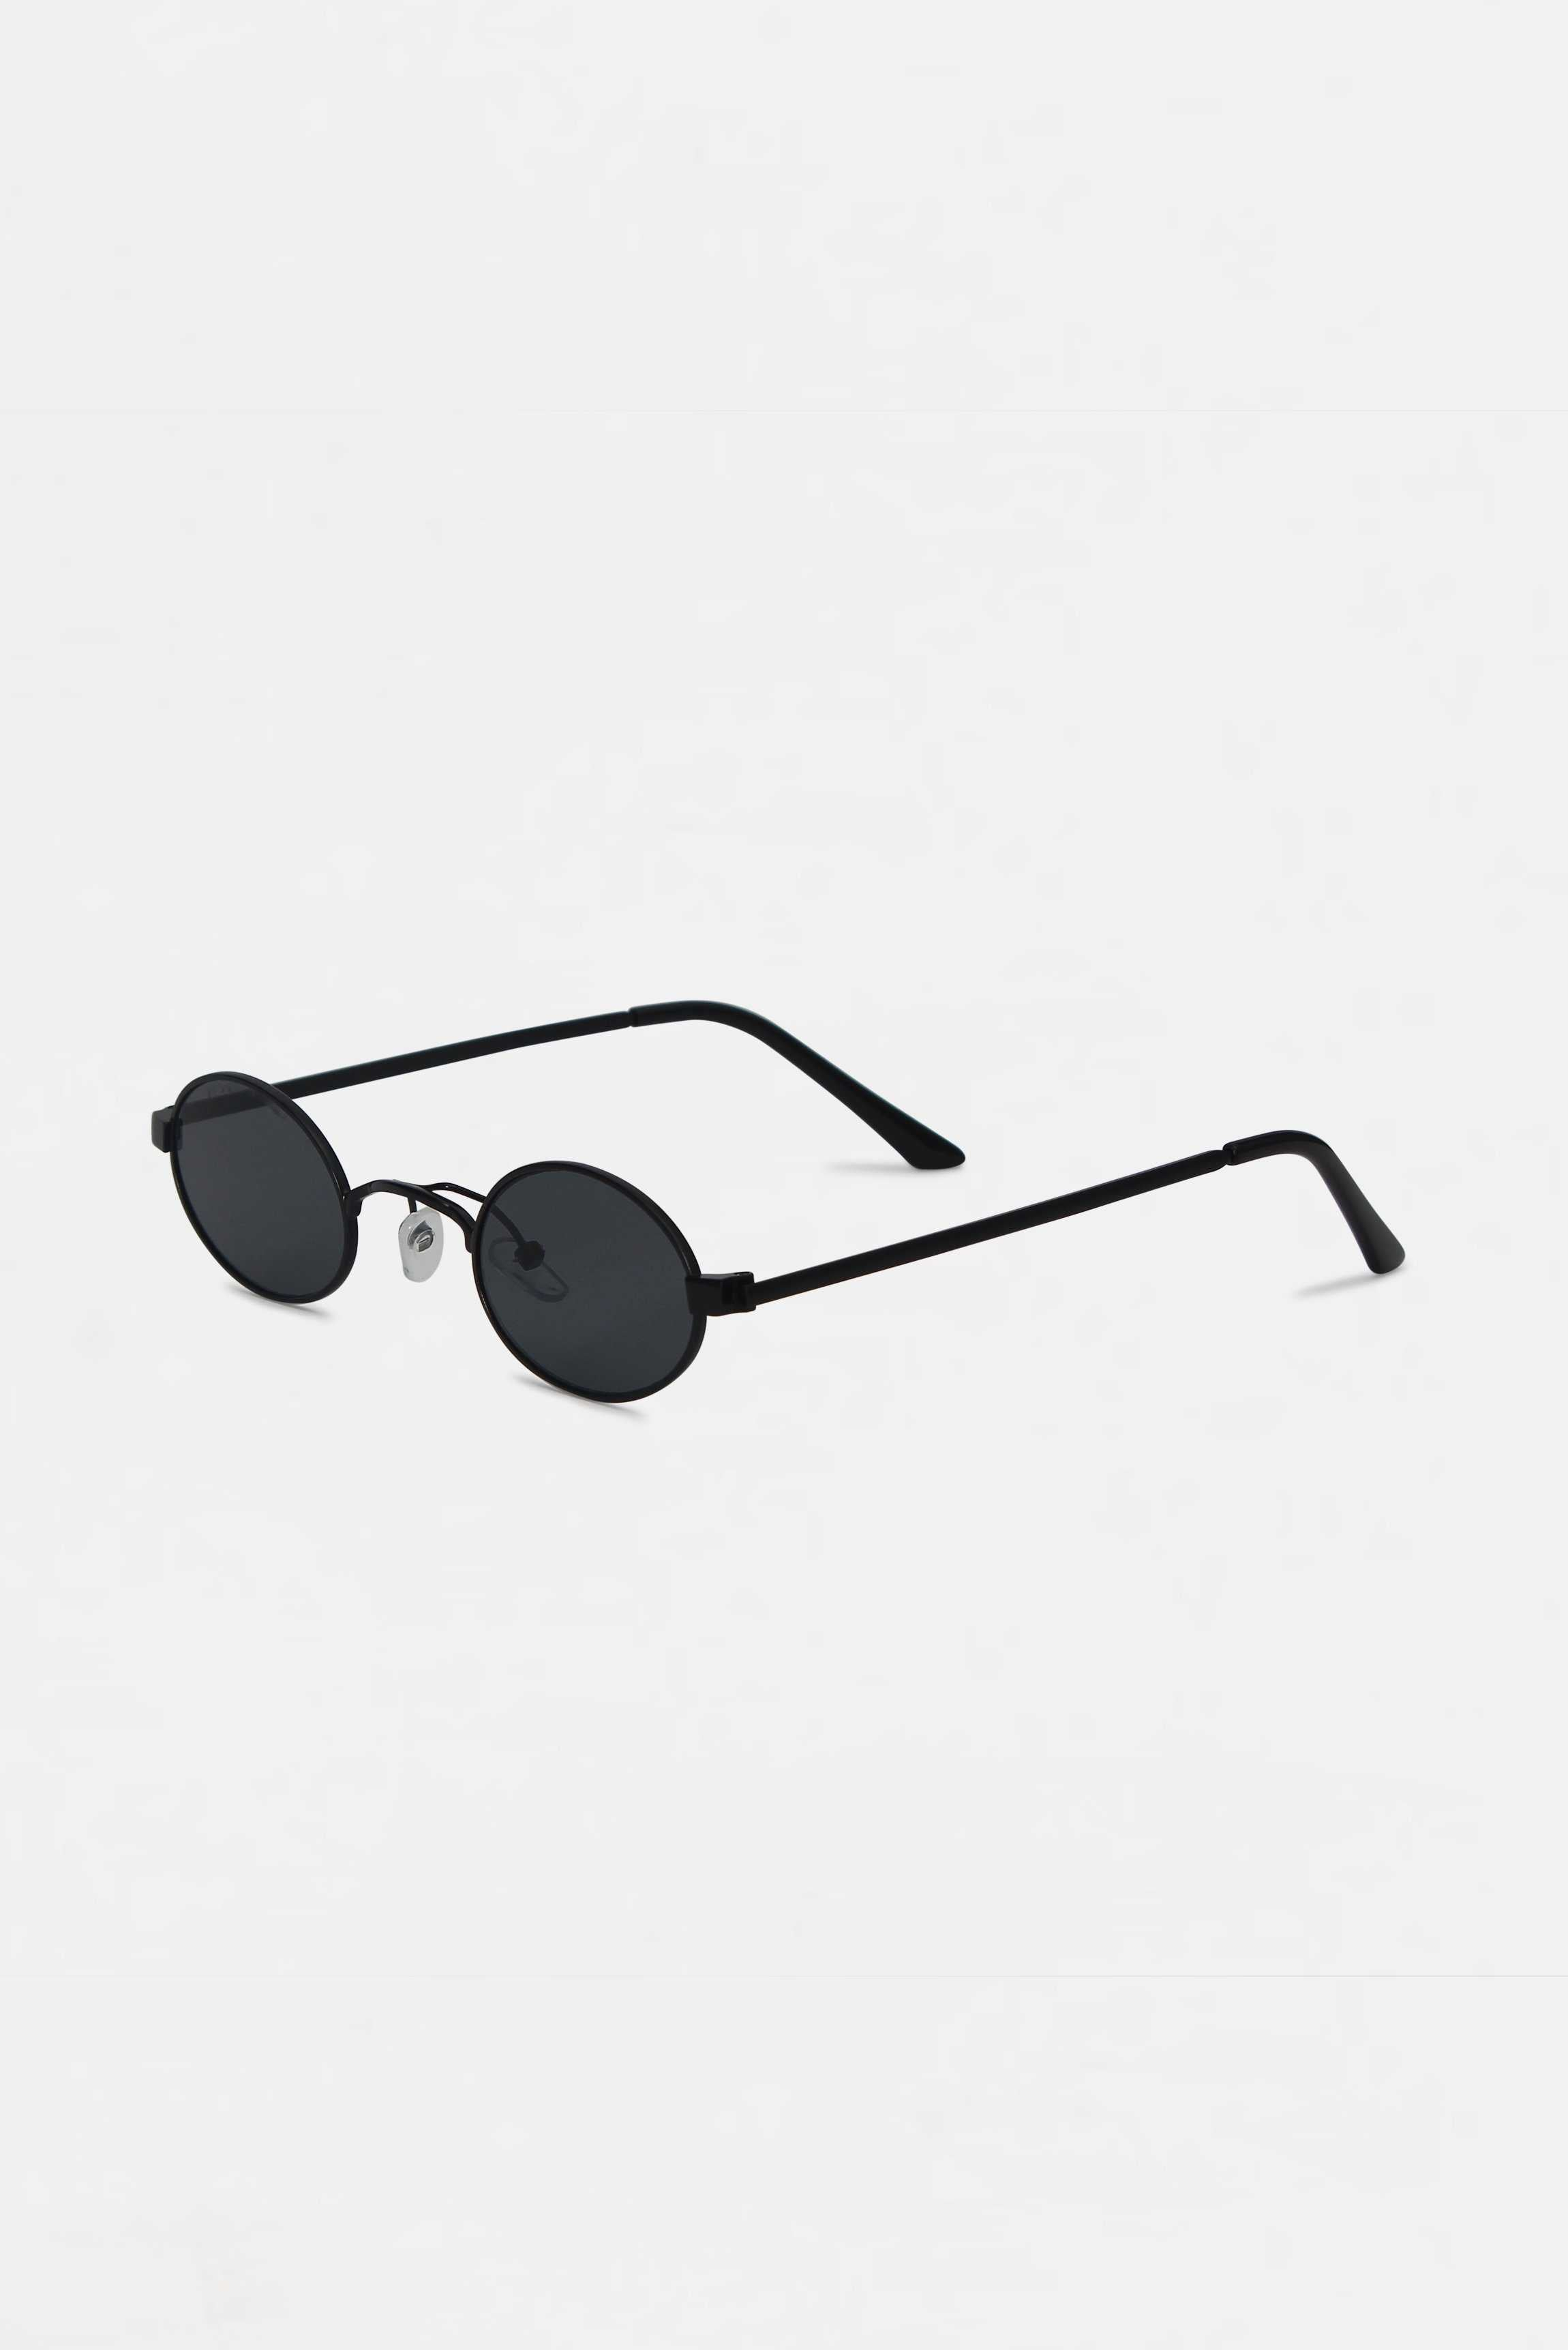 Nineties Oval Frame Sunglasses